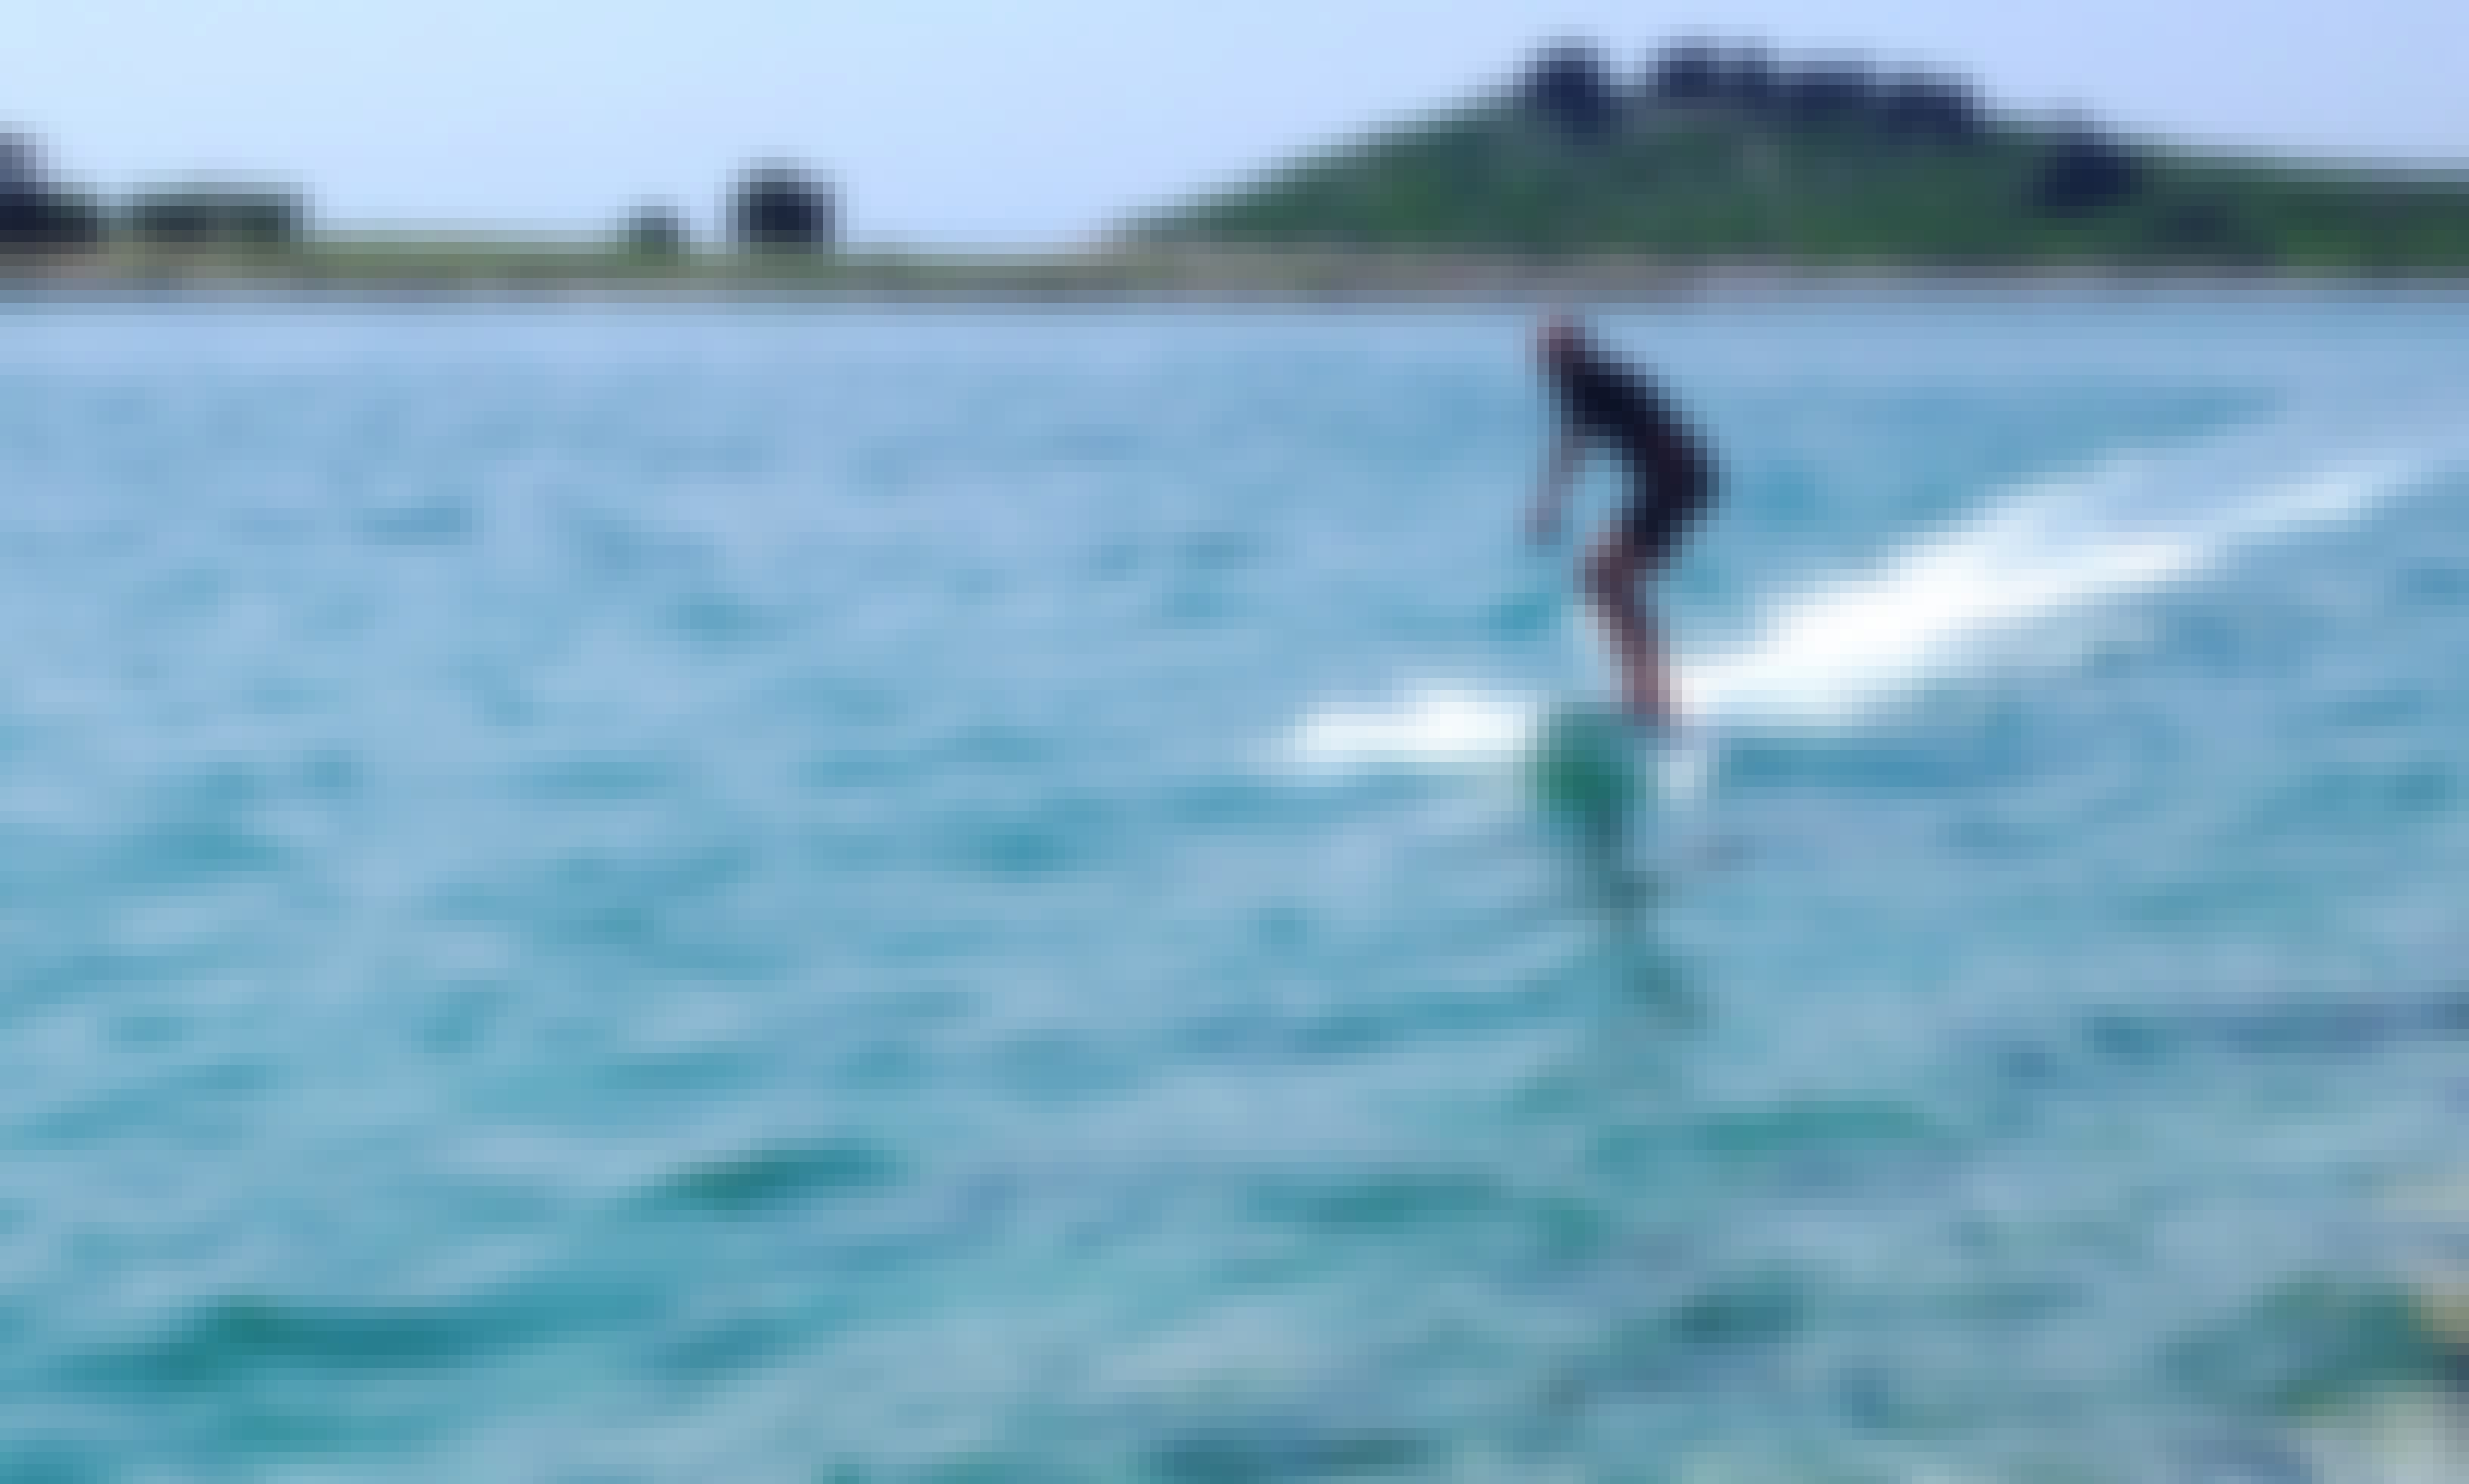 Electric surfboard for rent in Krk, Croatia (SURFER by Poletusa)